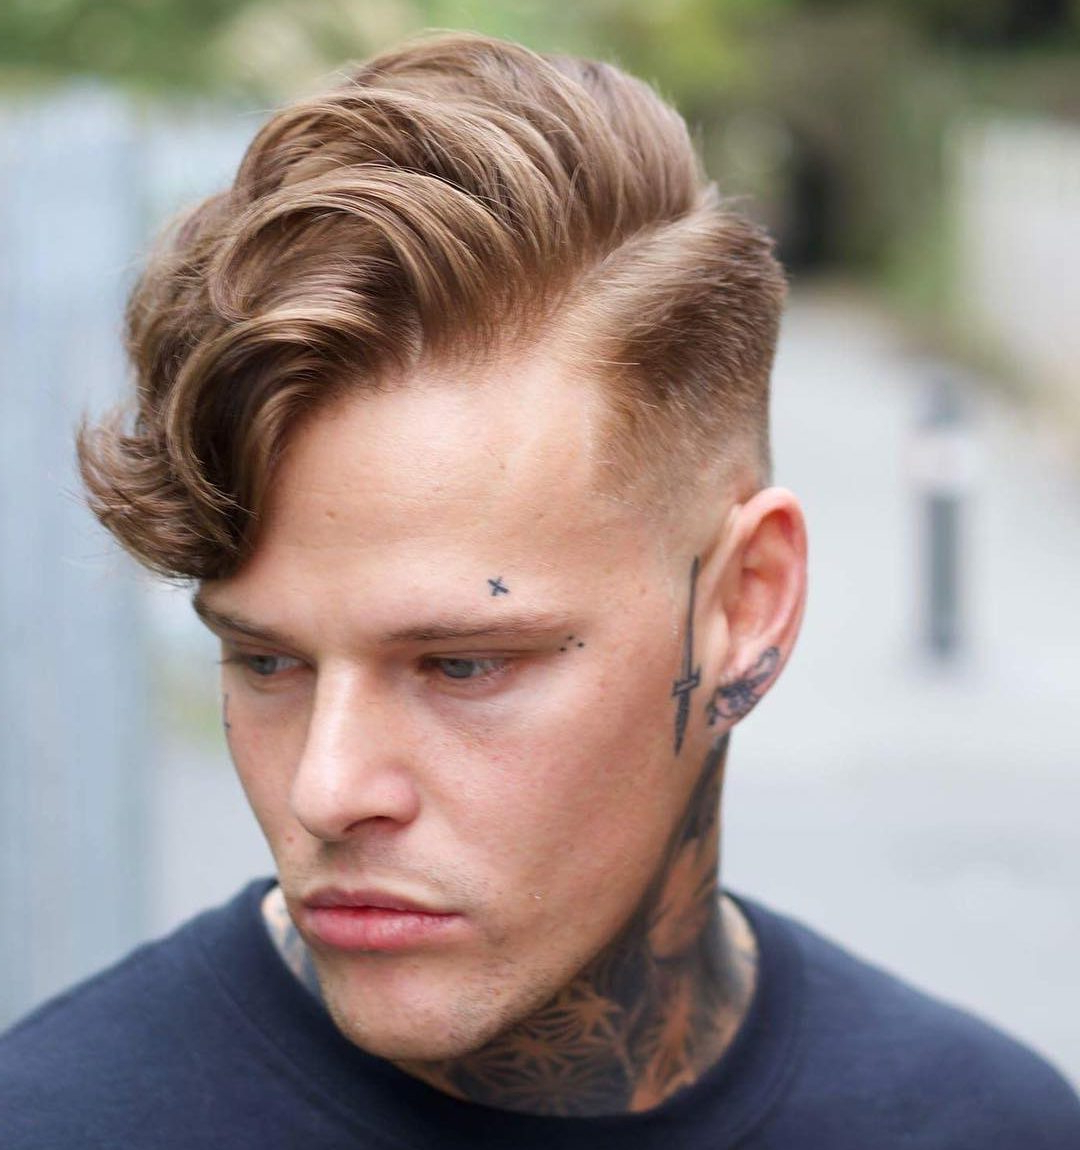 21 Side Part Haircuts (Cool + Modern) Throughout Well Known Retro Side Hairdos With Texture (View 3 of 20)